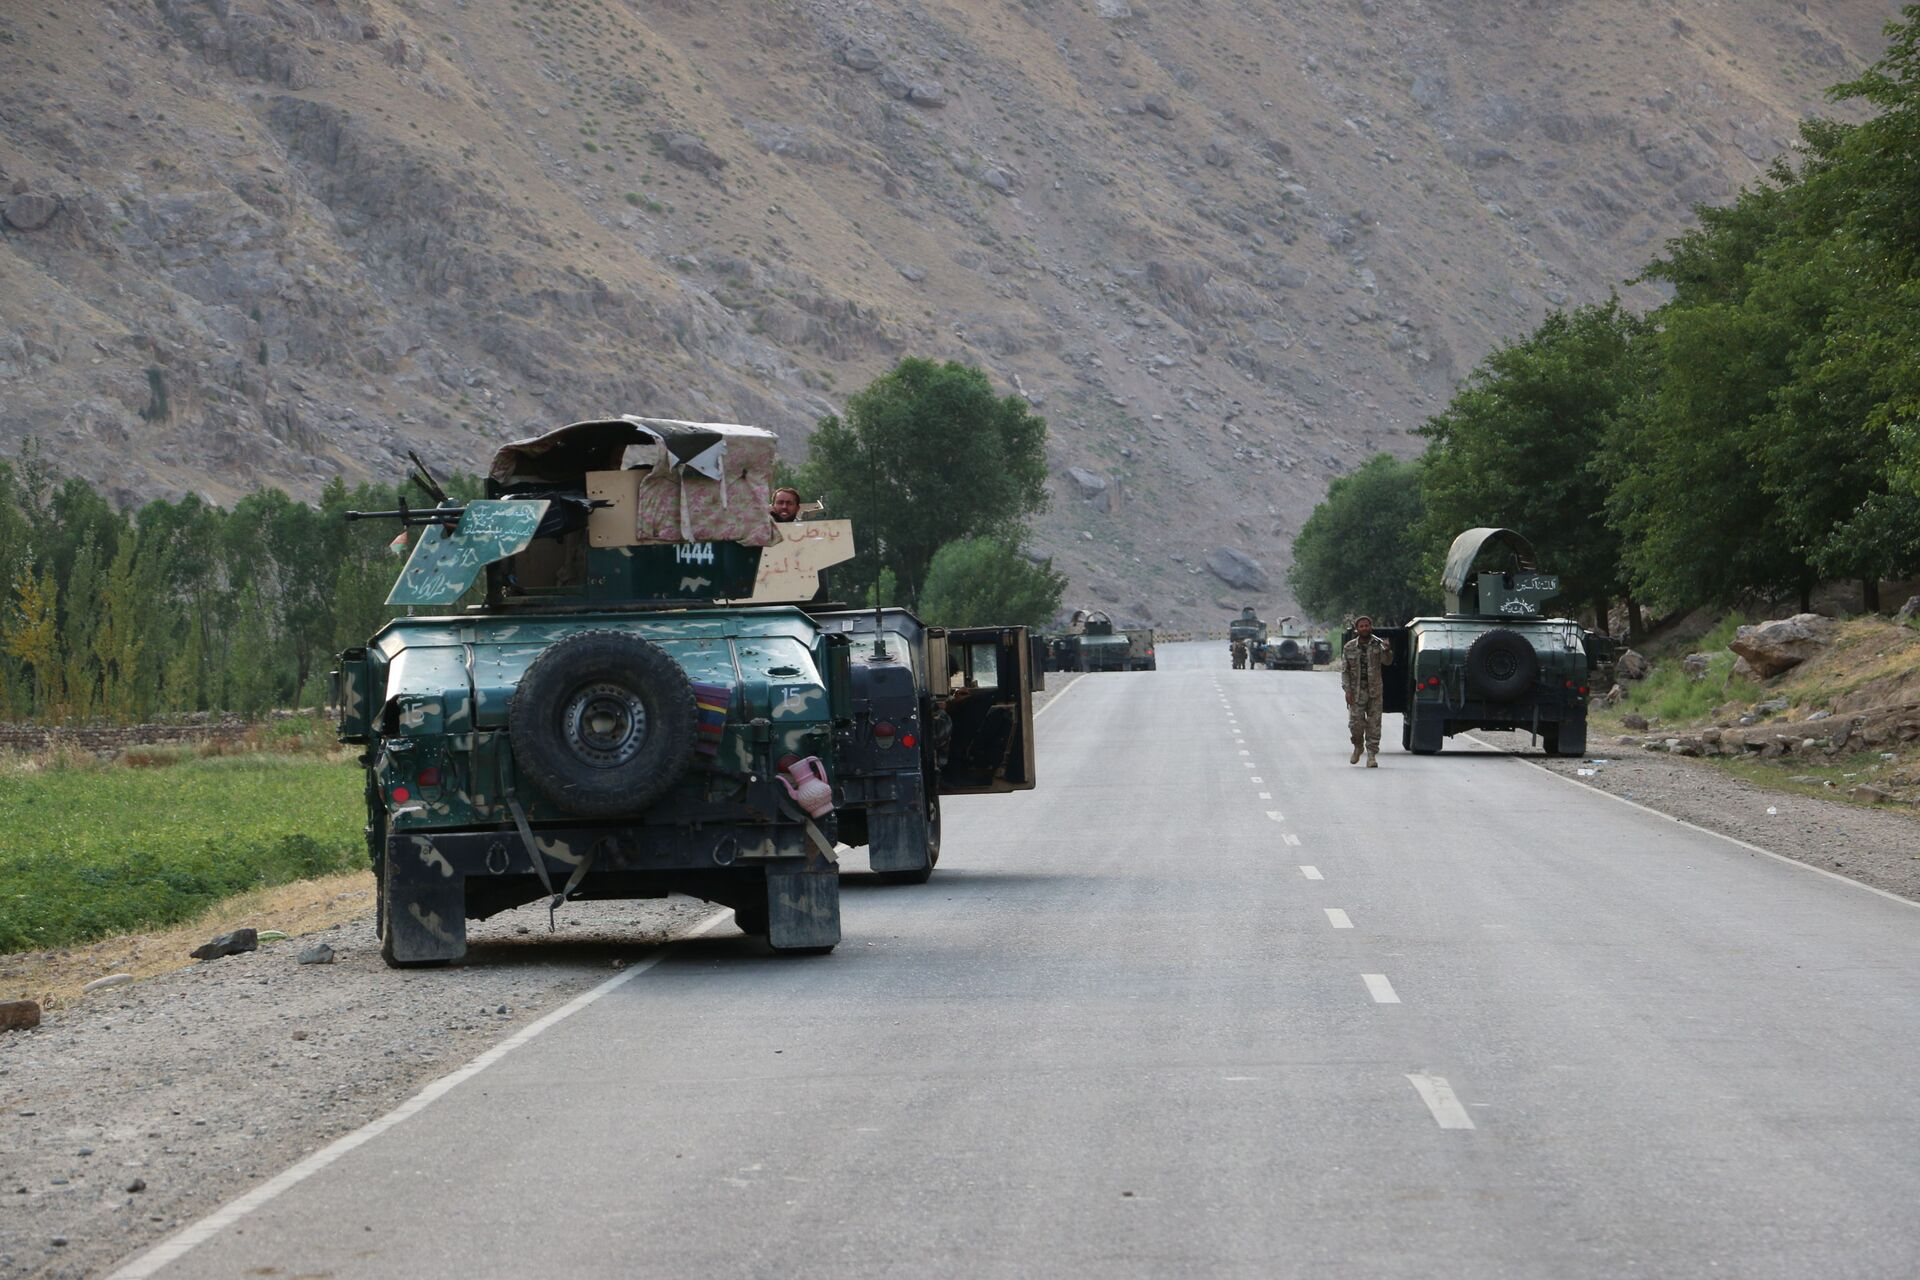 Afghan soldiers pause on a road at the front line of fighting between Taliban and Security forces,  near the city of Badakhshan, northern Afghanistan, Sunday, July. 4, 2021. - Sputnik International, 1920, 07.09.2021